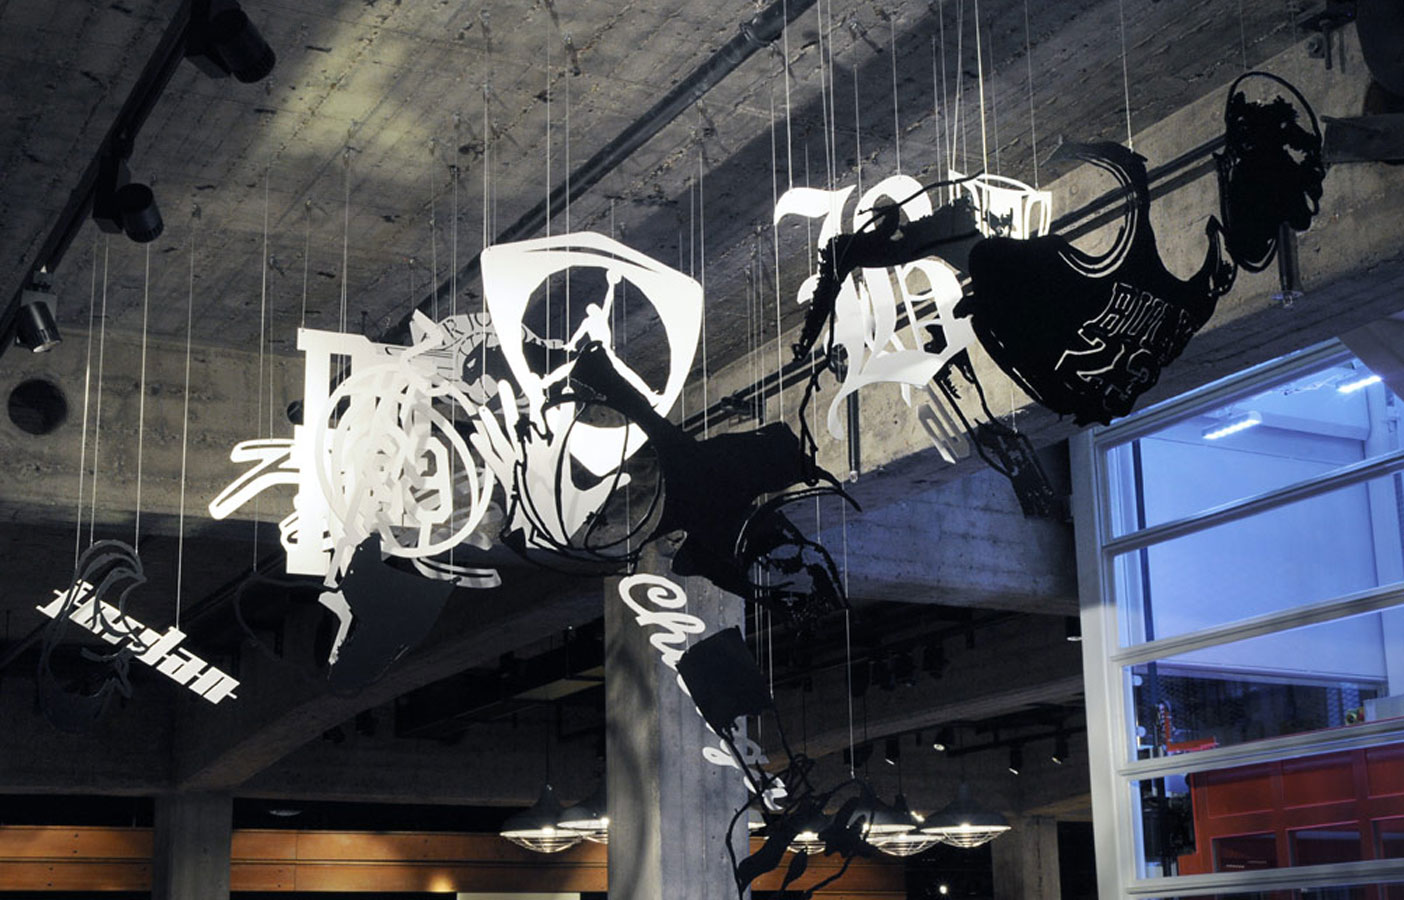 Aldworth James & Bond | Nike Store Berlin - suspended artwork by Michael Murphy